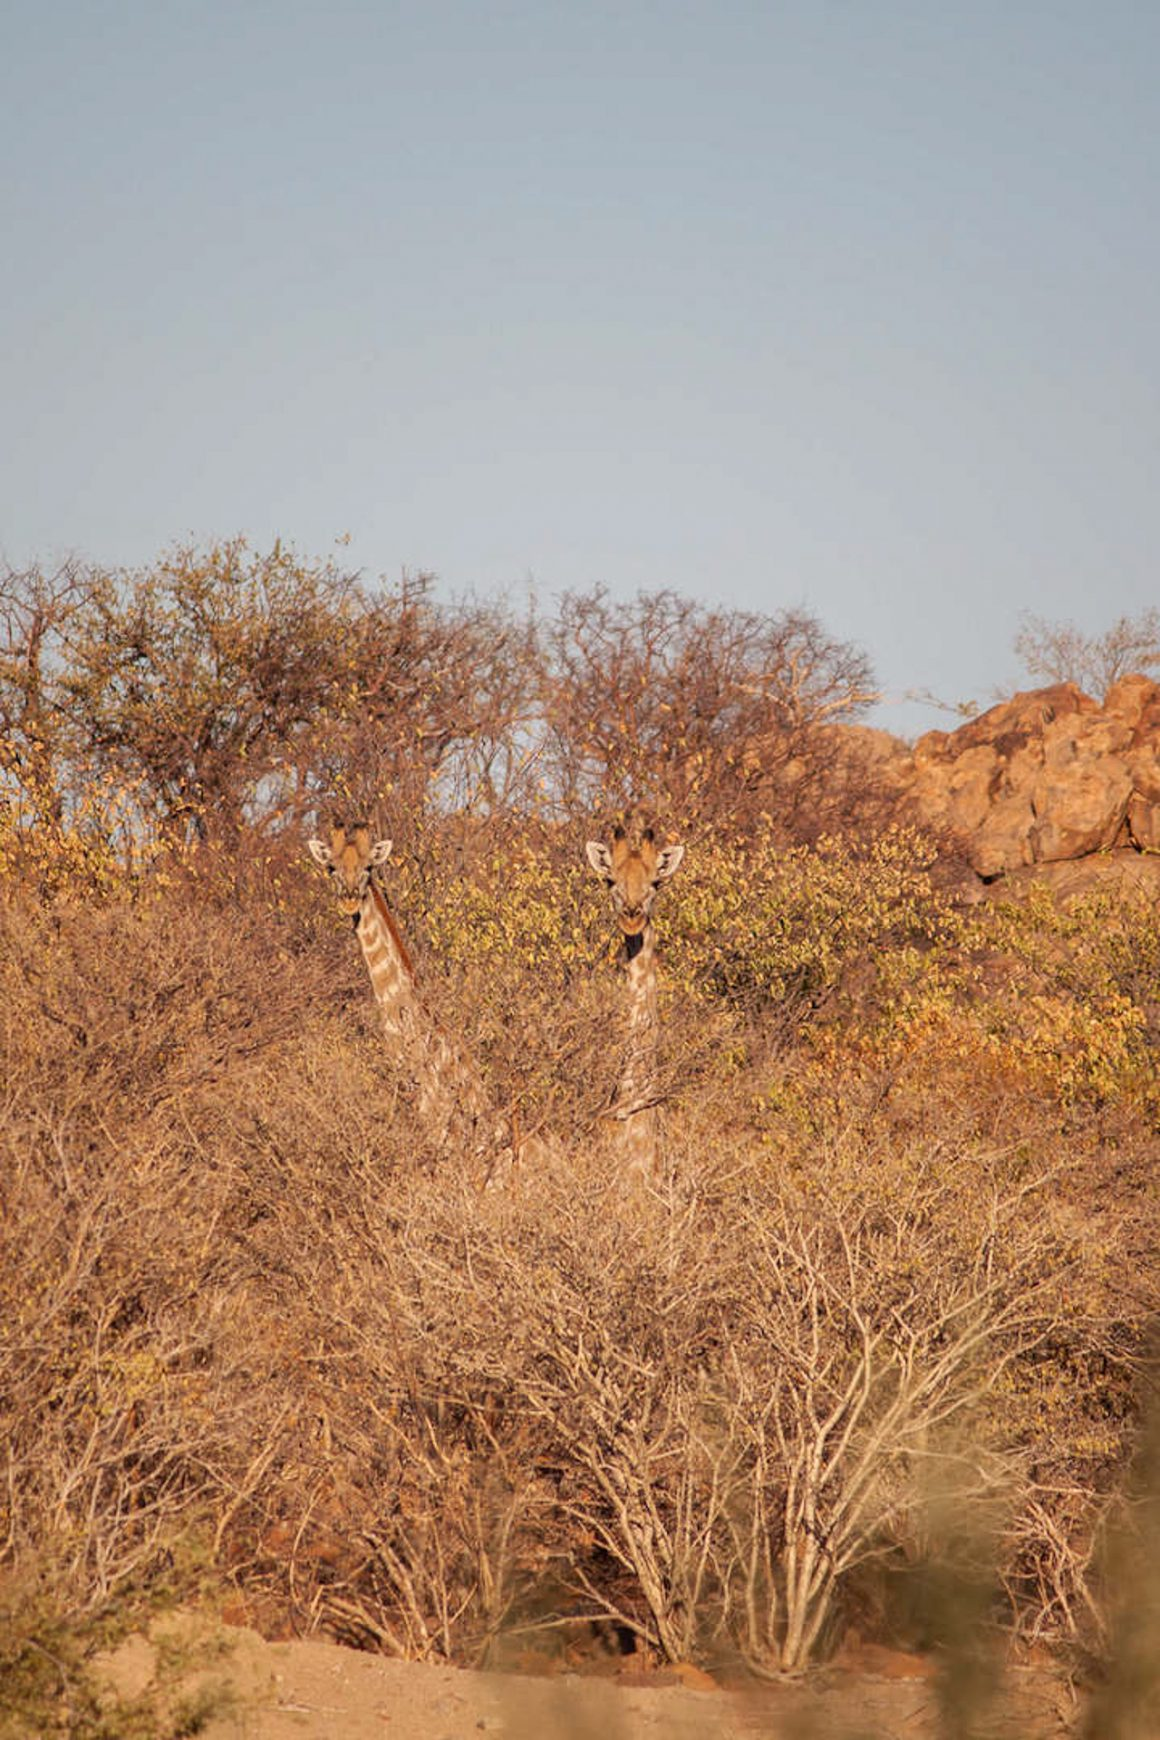 Two giraffes hiding in the trees in Kamanjab